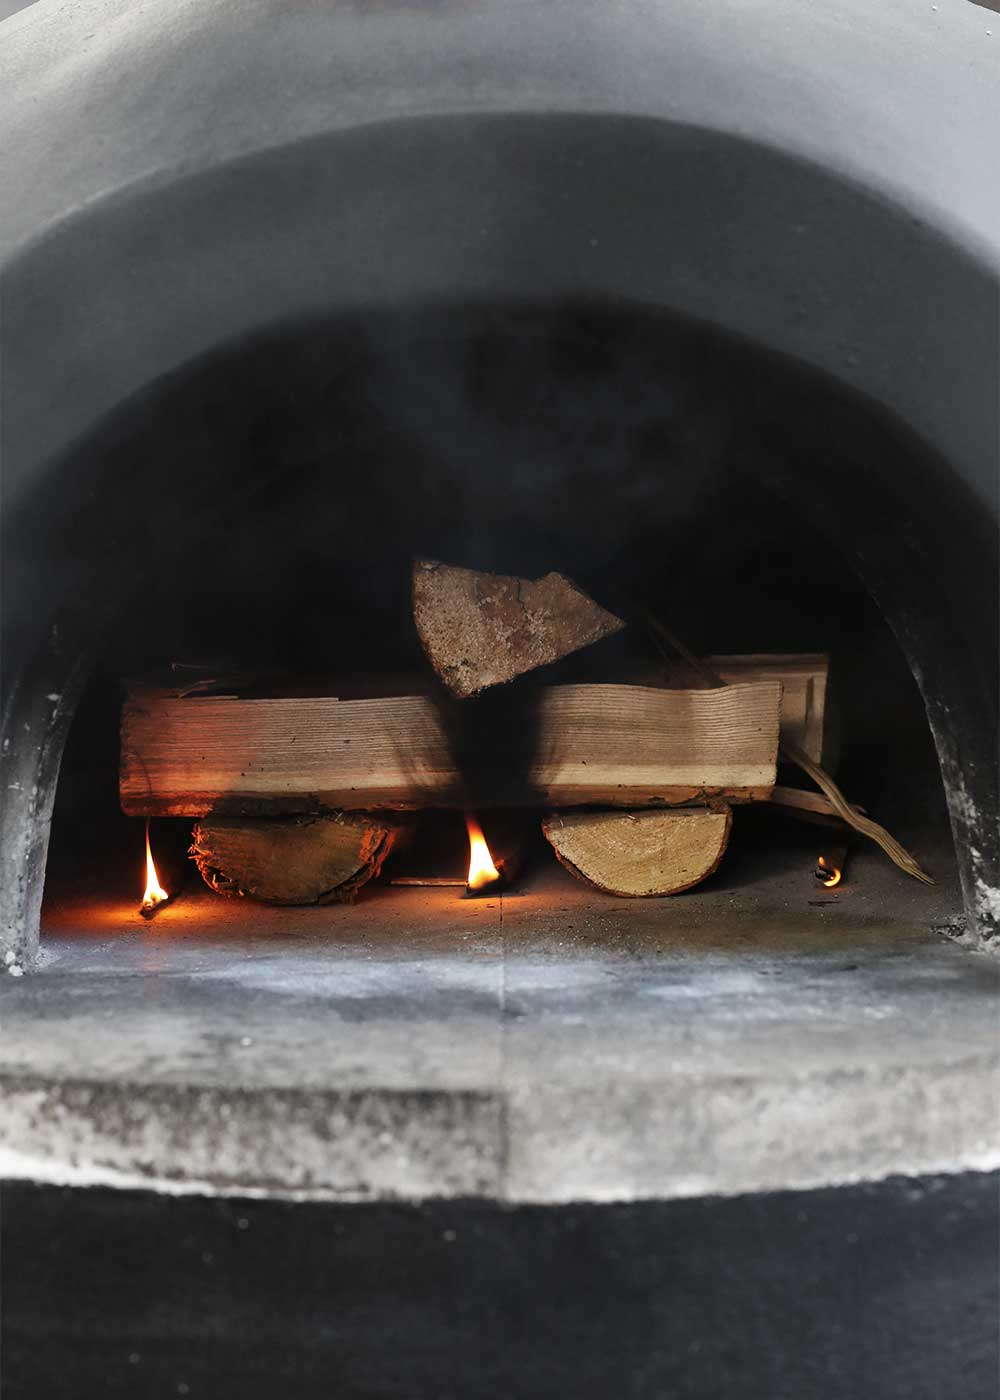 How to start a fire in a pizza oven with The Fauxmartha